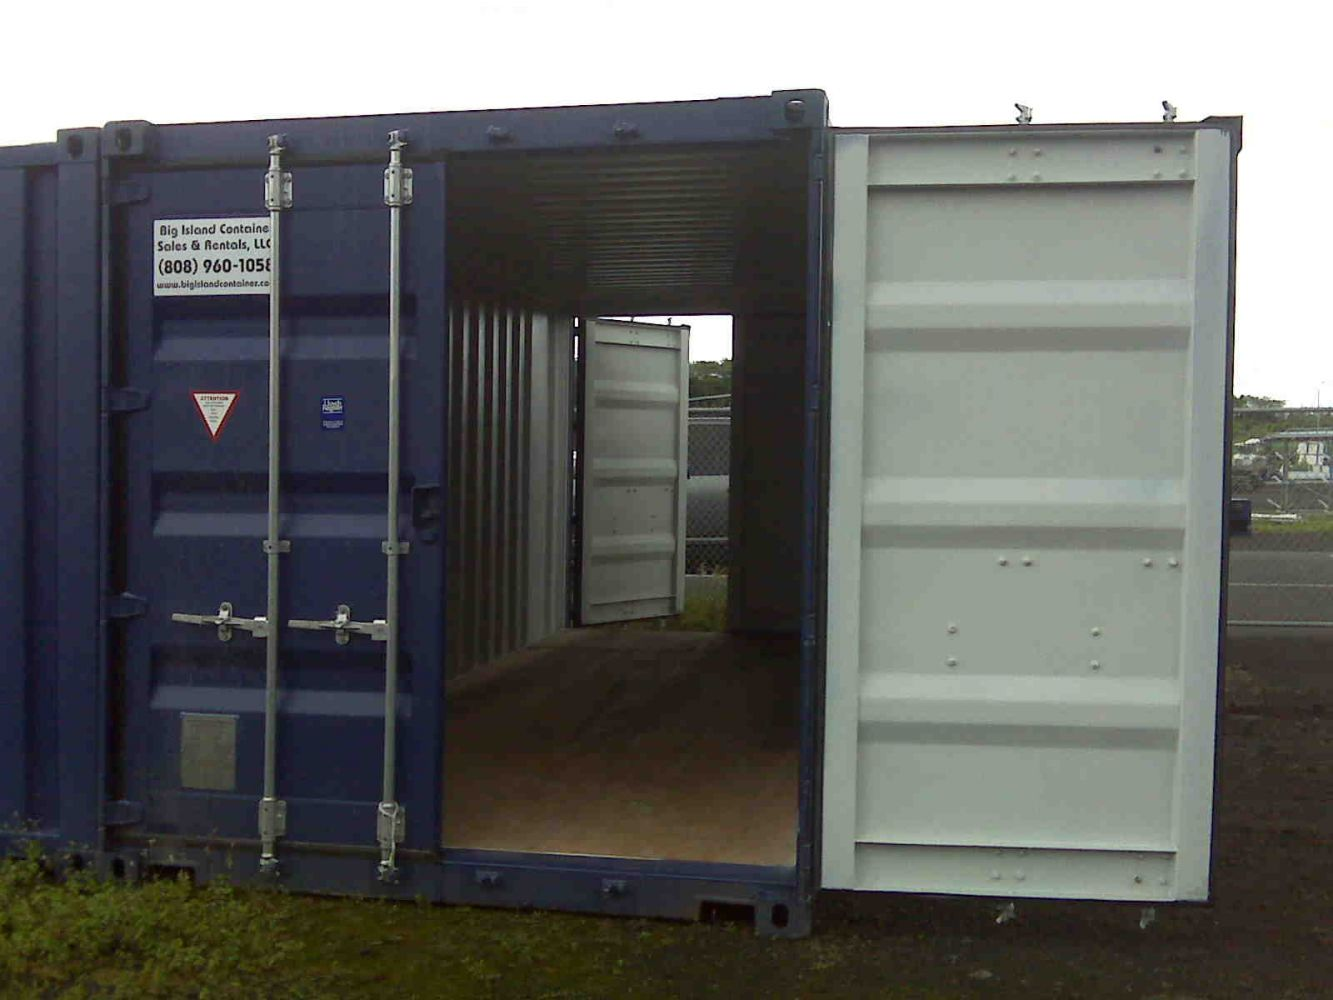 20' Container w/doors on both ends on Big Island, Hawaii